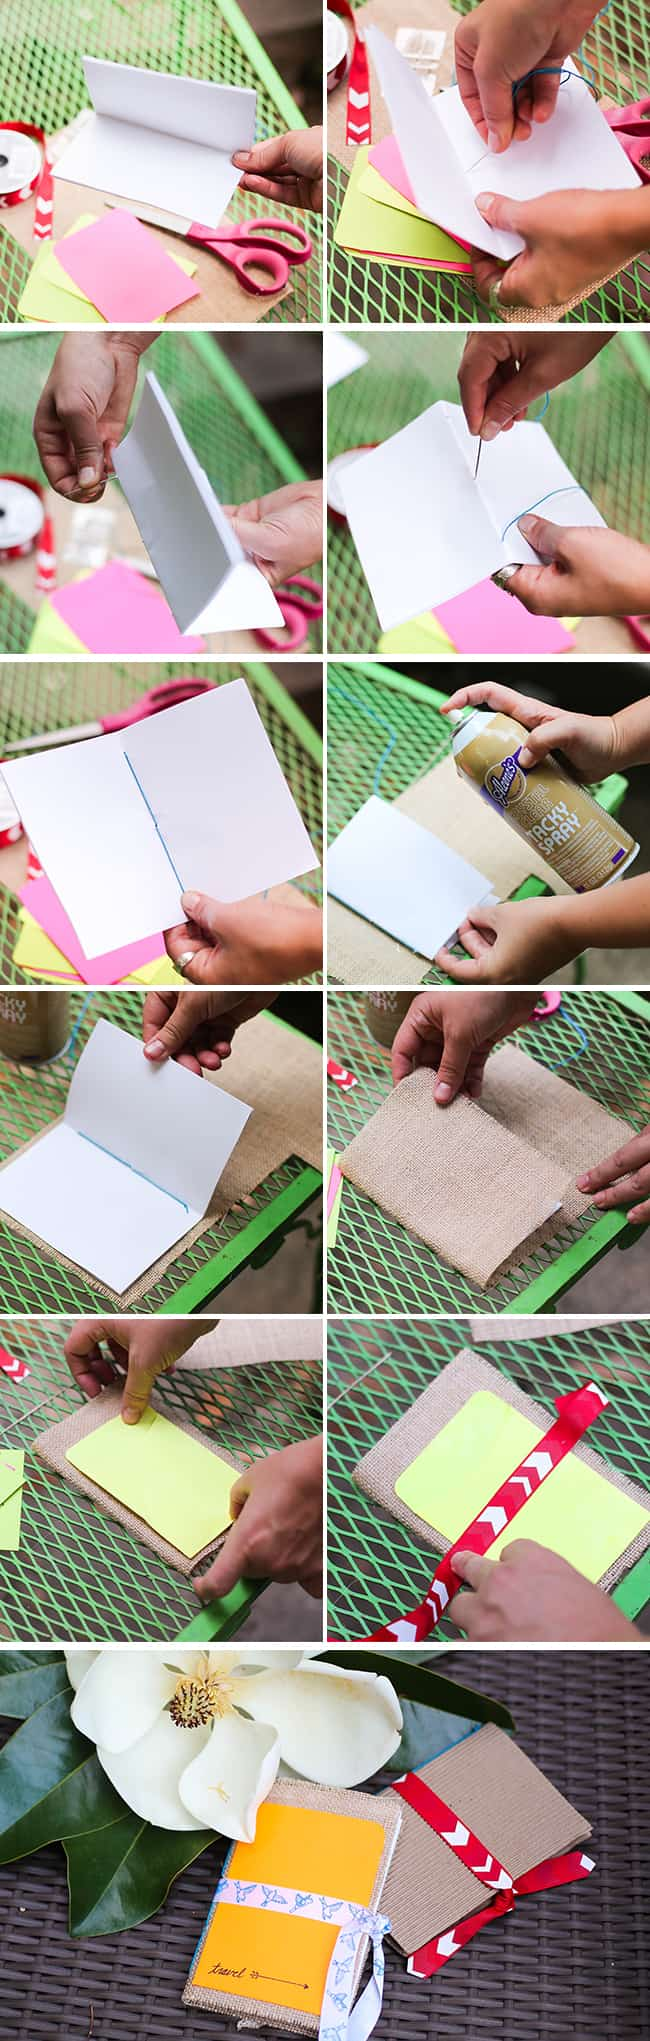 Make your own purse travel journal